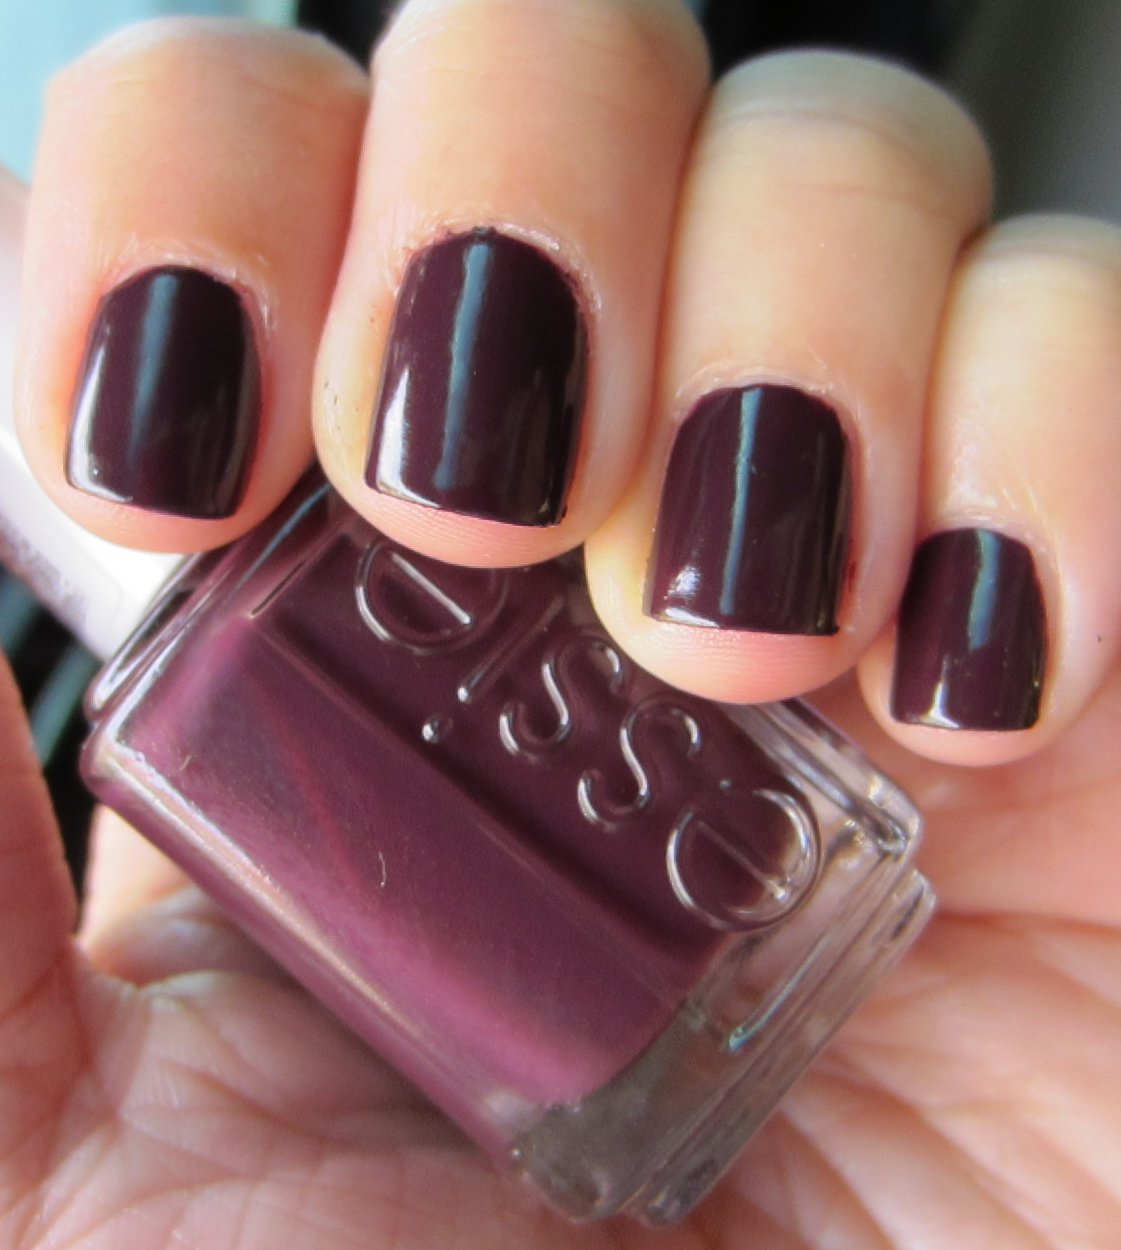 Liz Hearts Beauty!: Essie Nail Lacquer in Carry On